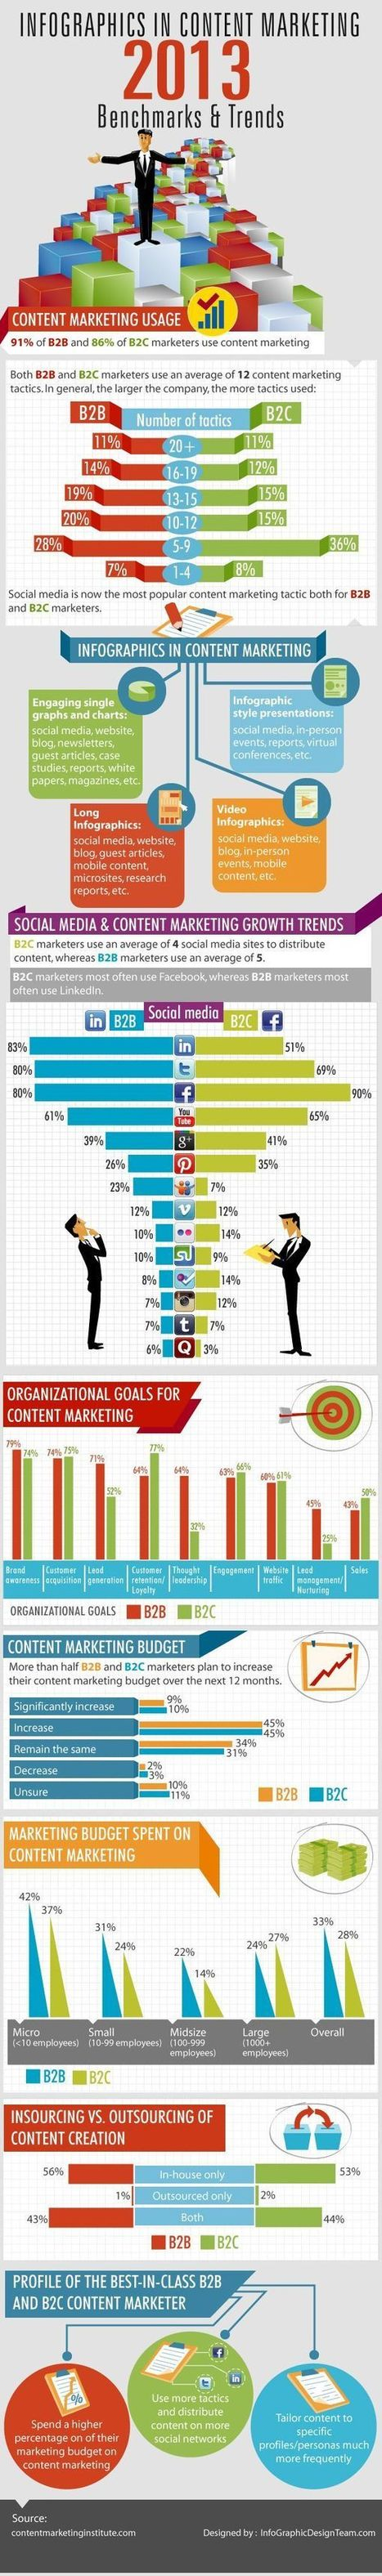 Social Media Infographics | Online Visibility For The Non-Savvy Entrepreneur | Scoop.it